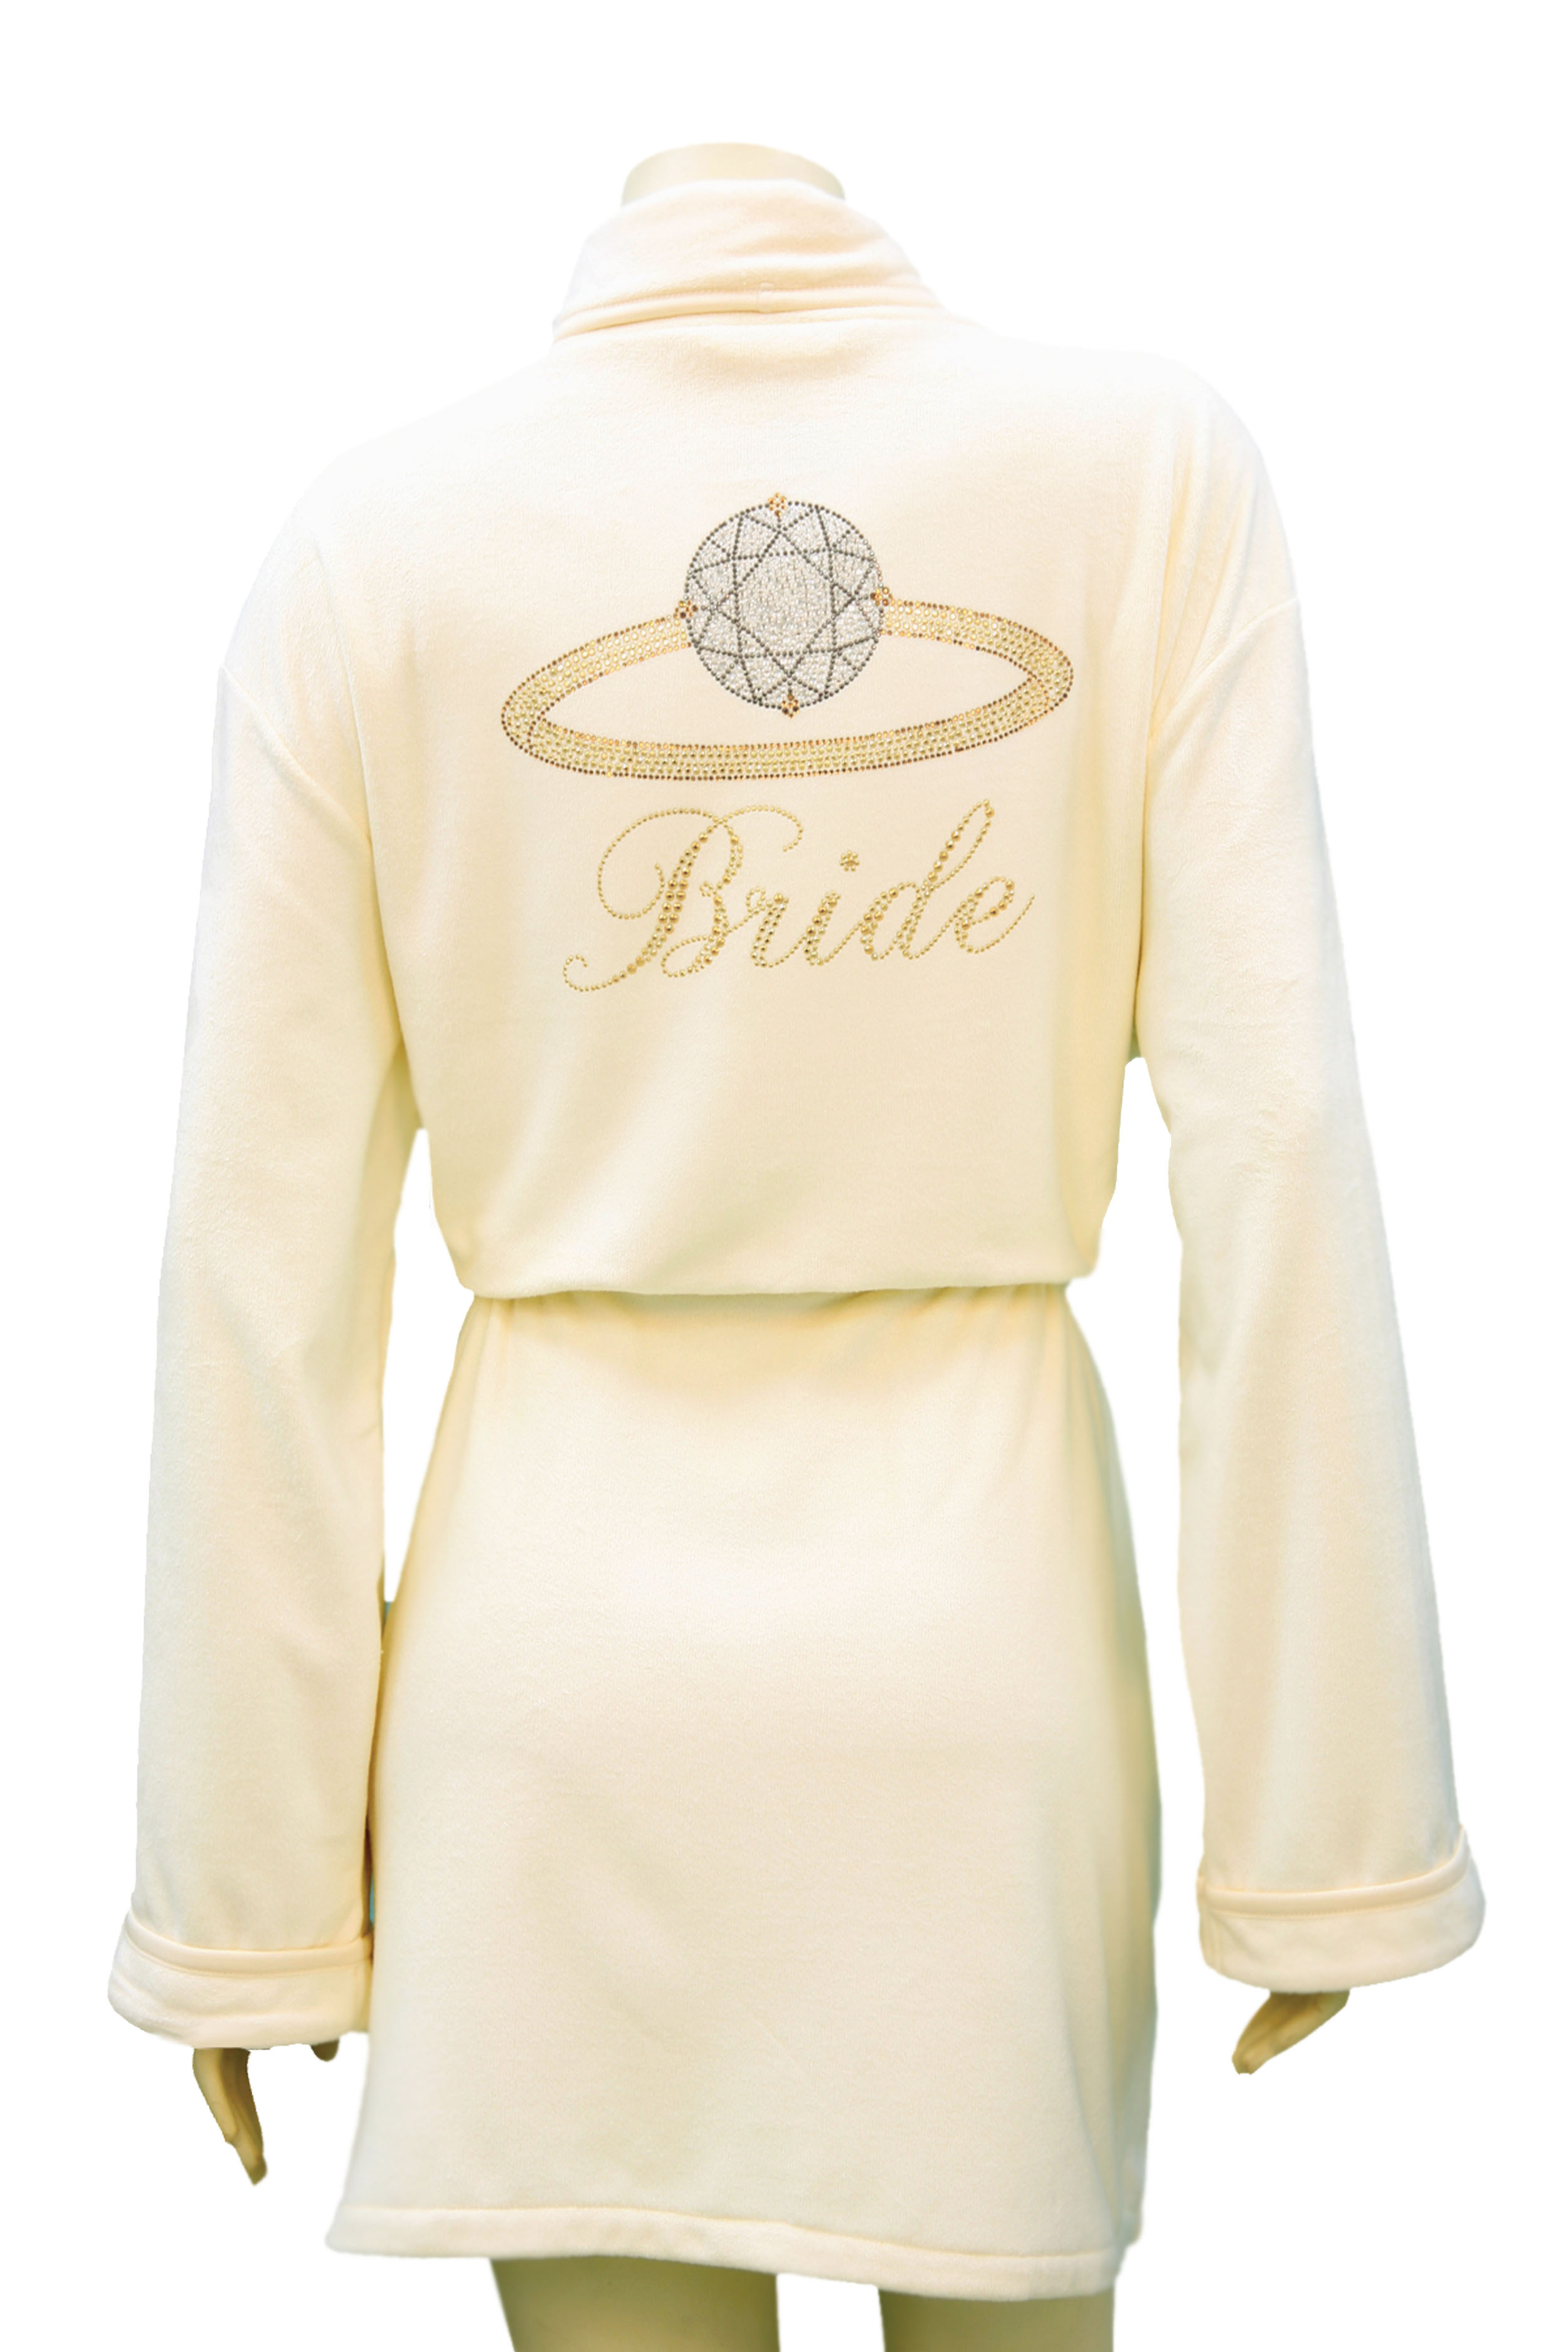 Wrap Up Bride Robe